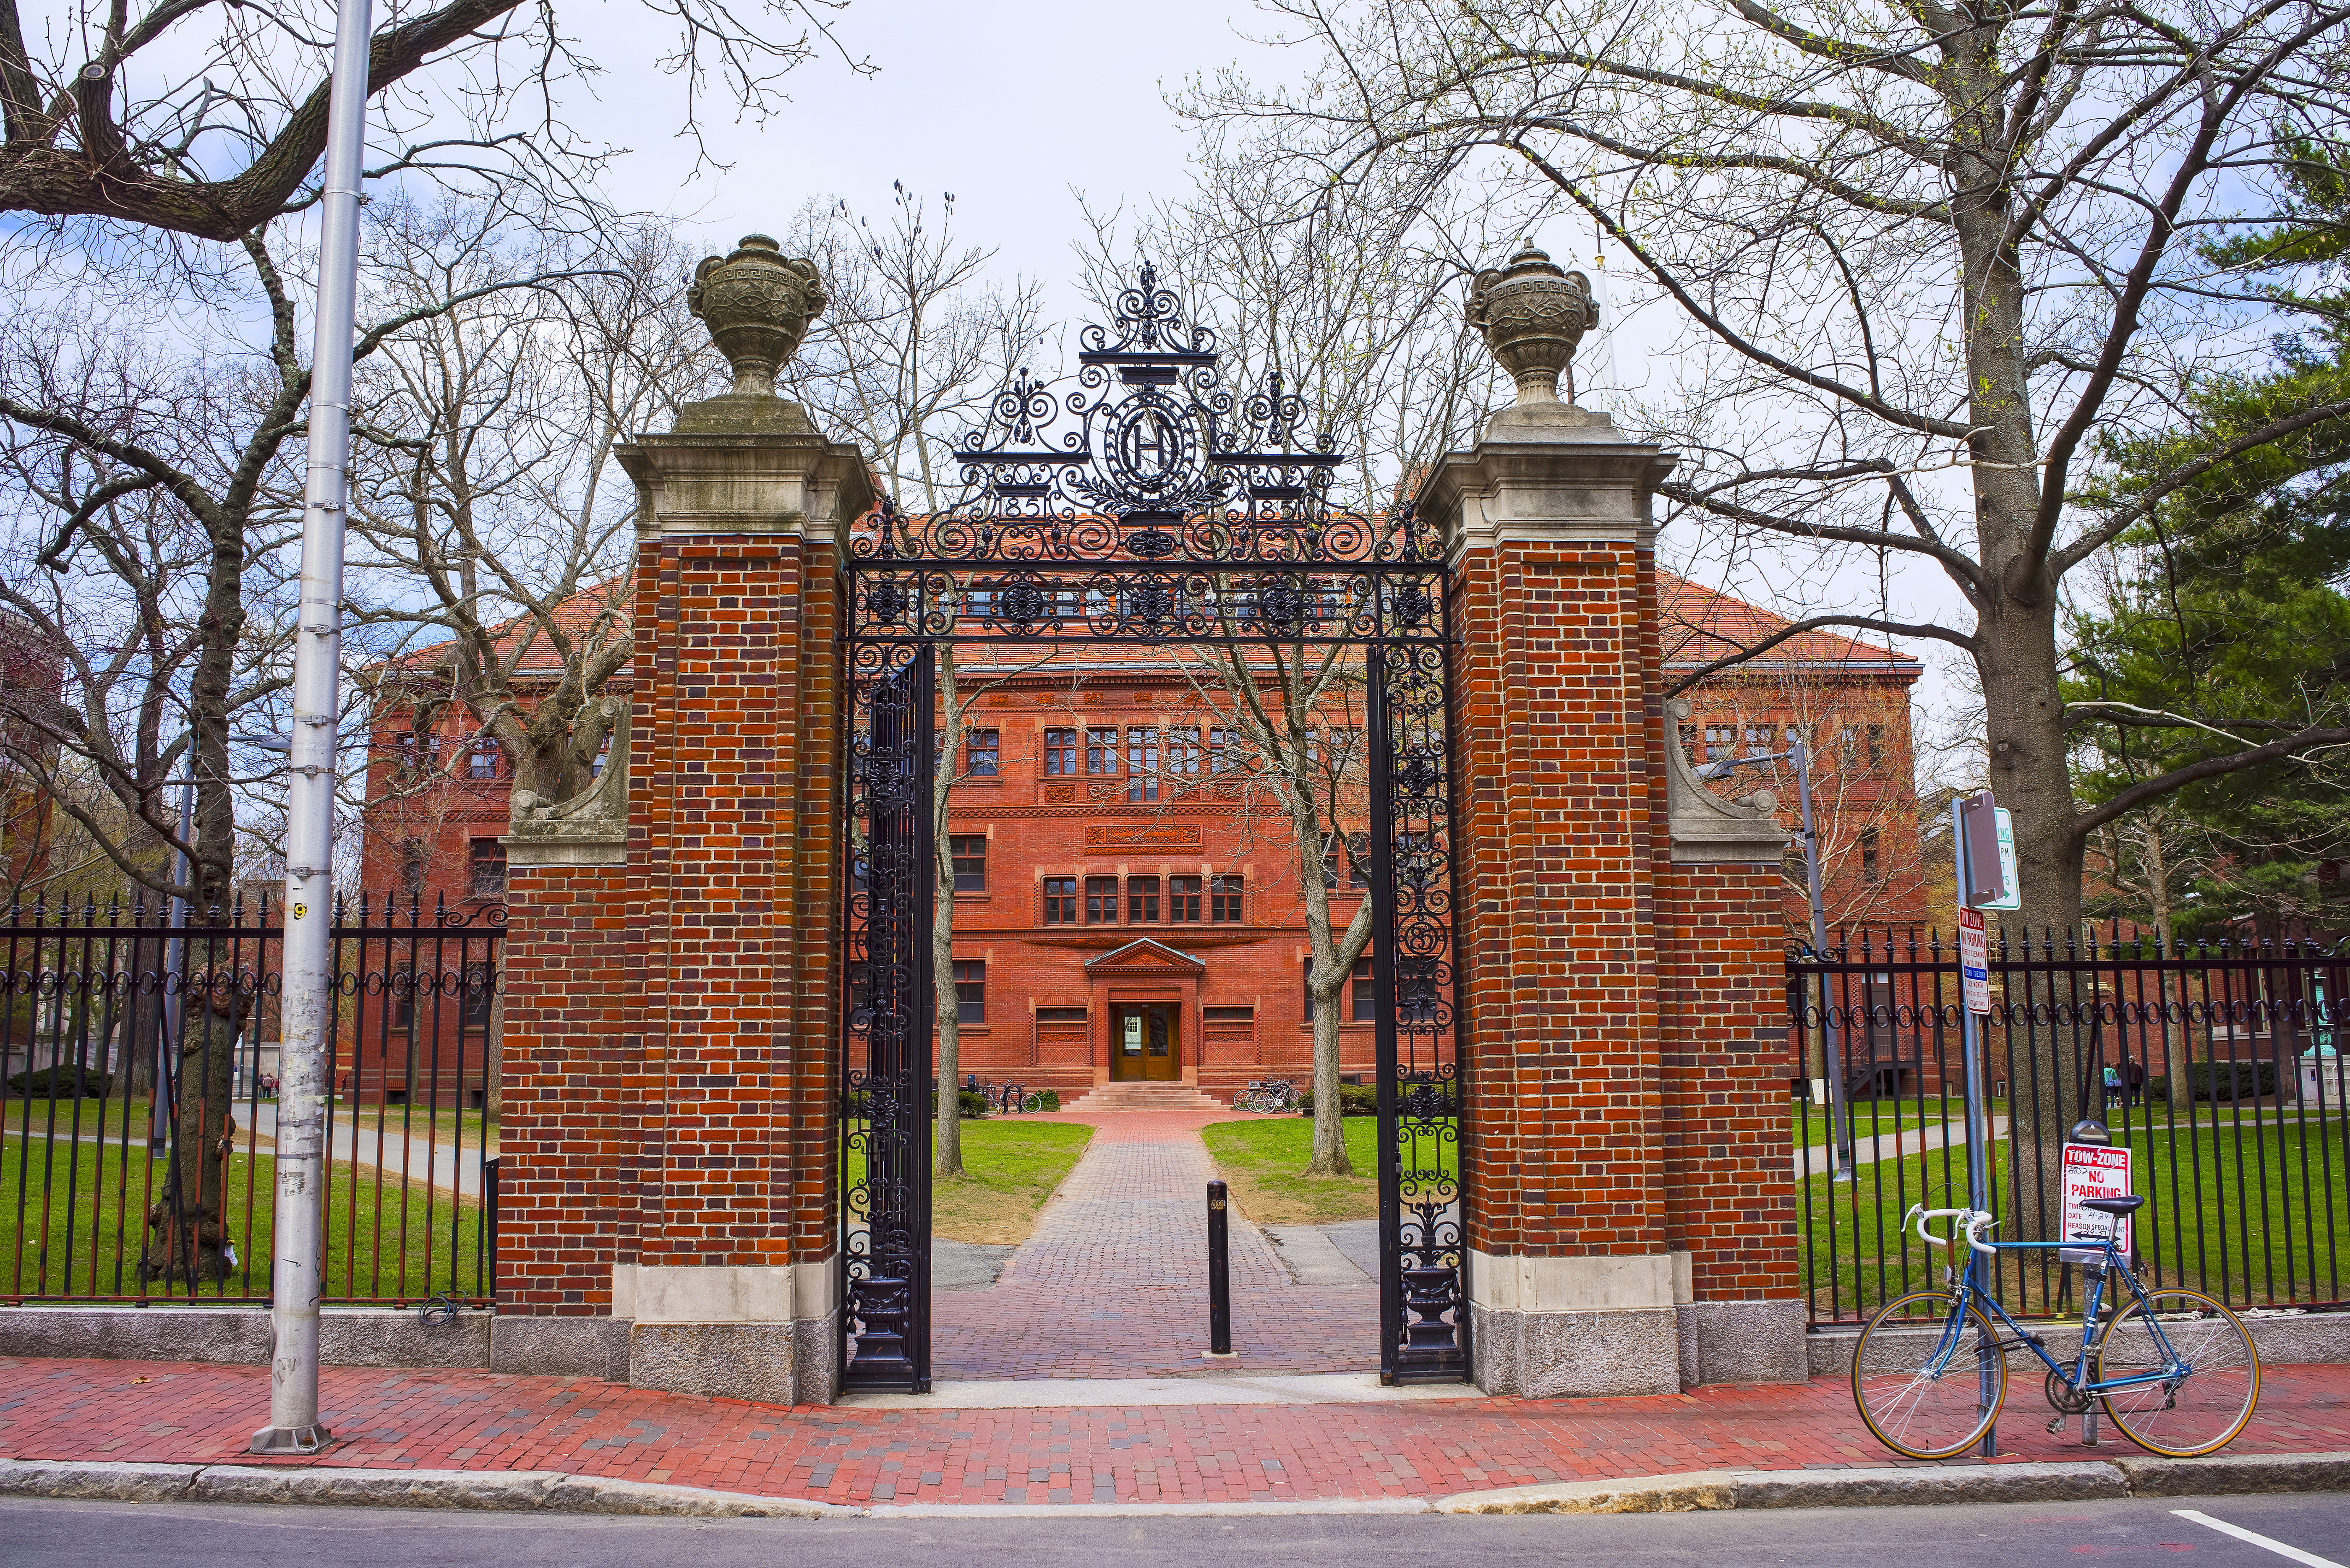 Entrance gate and Sever Hall at Harvard Yard in Cambridge